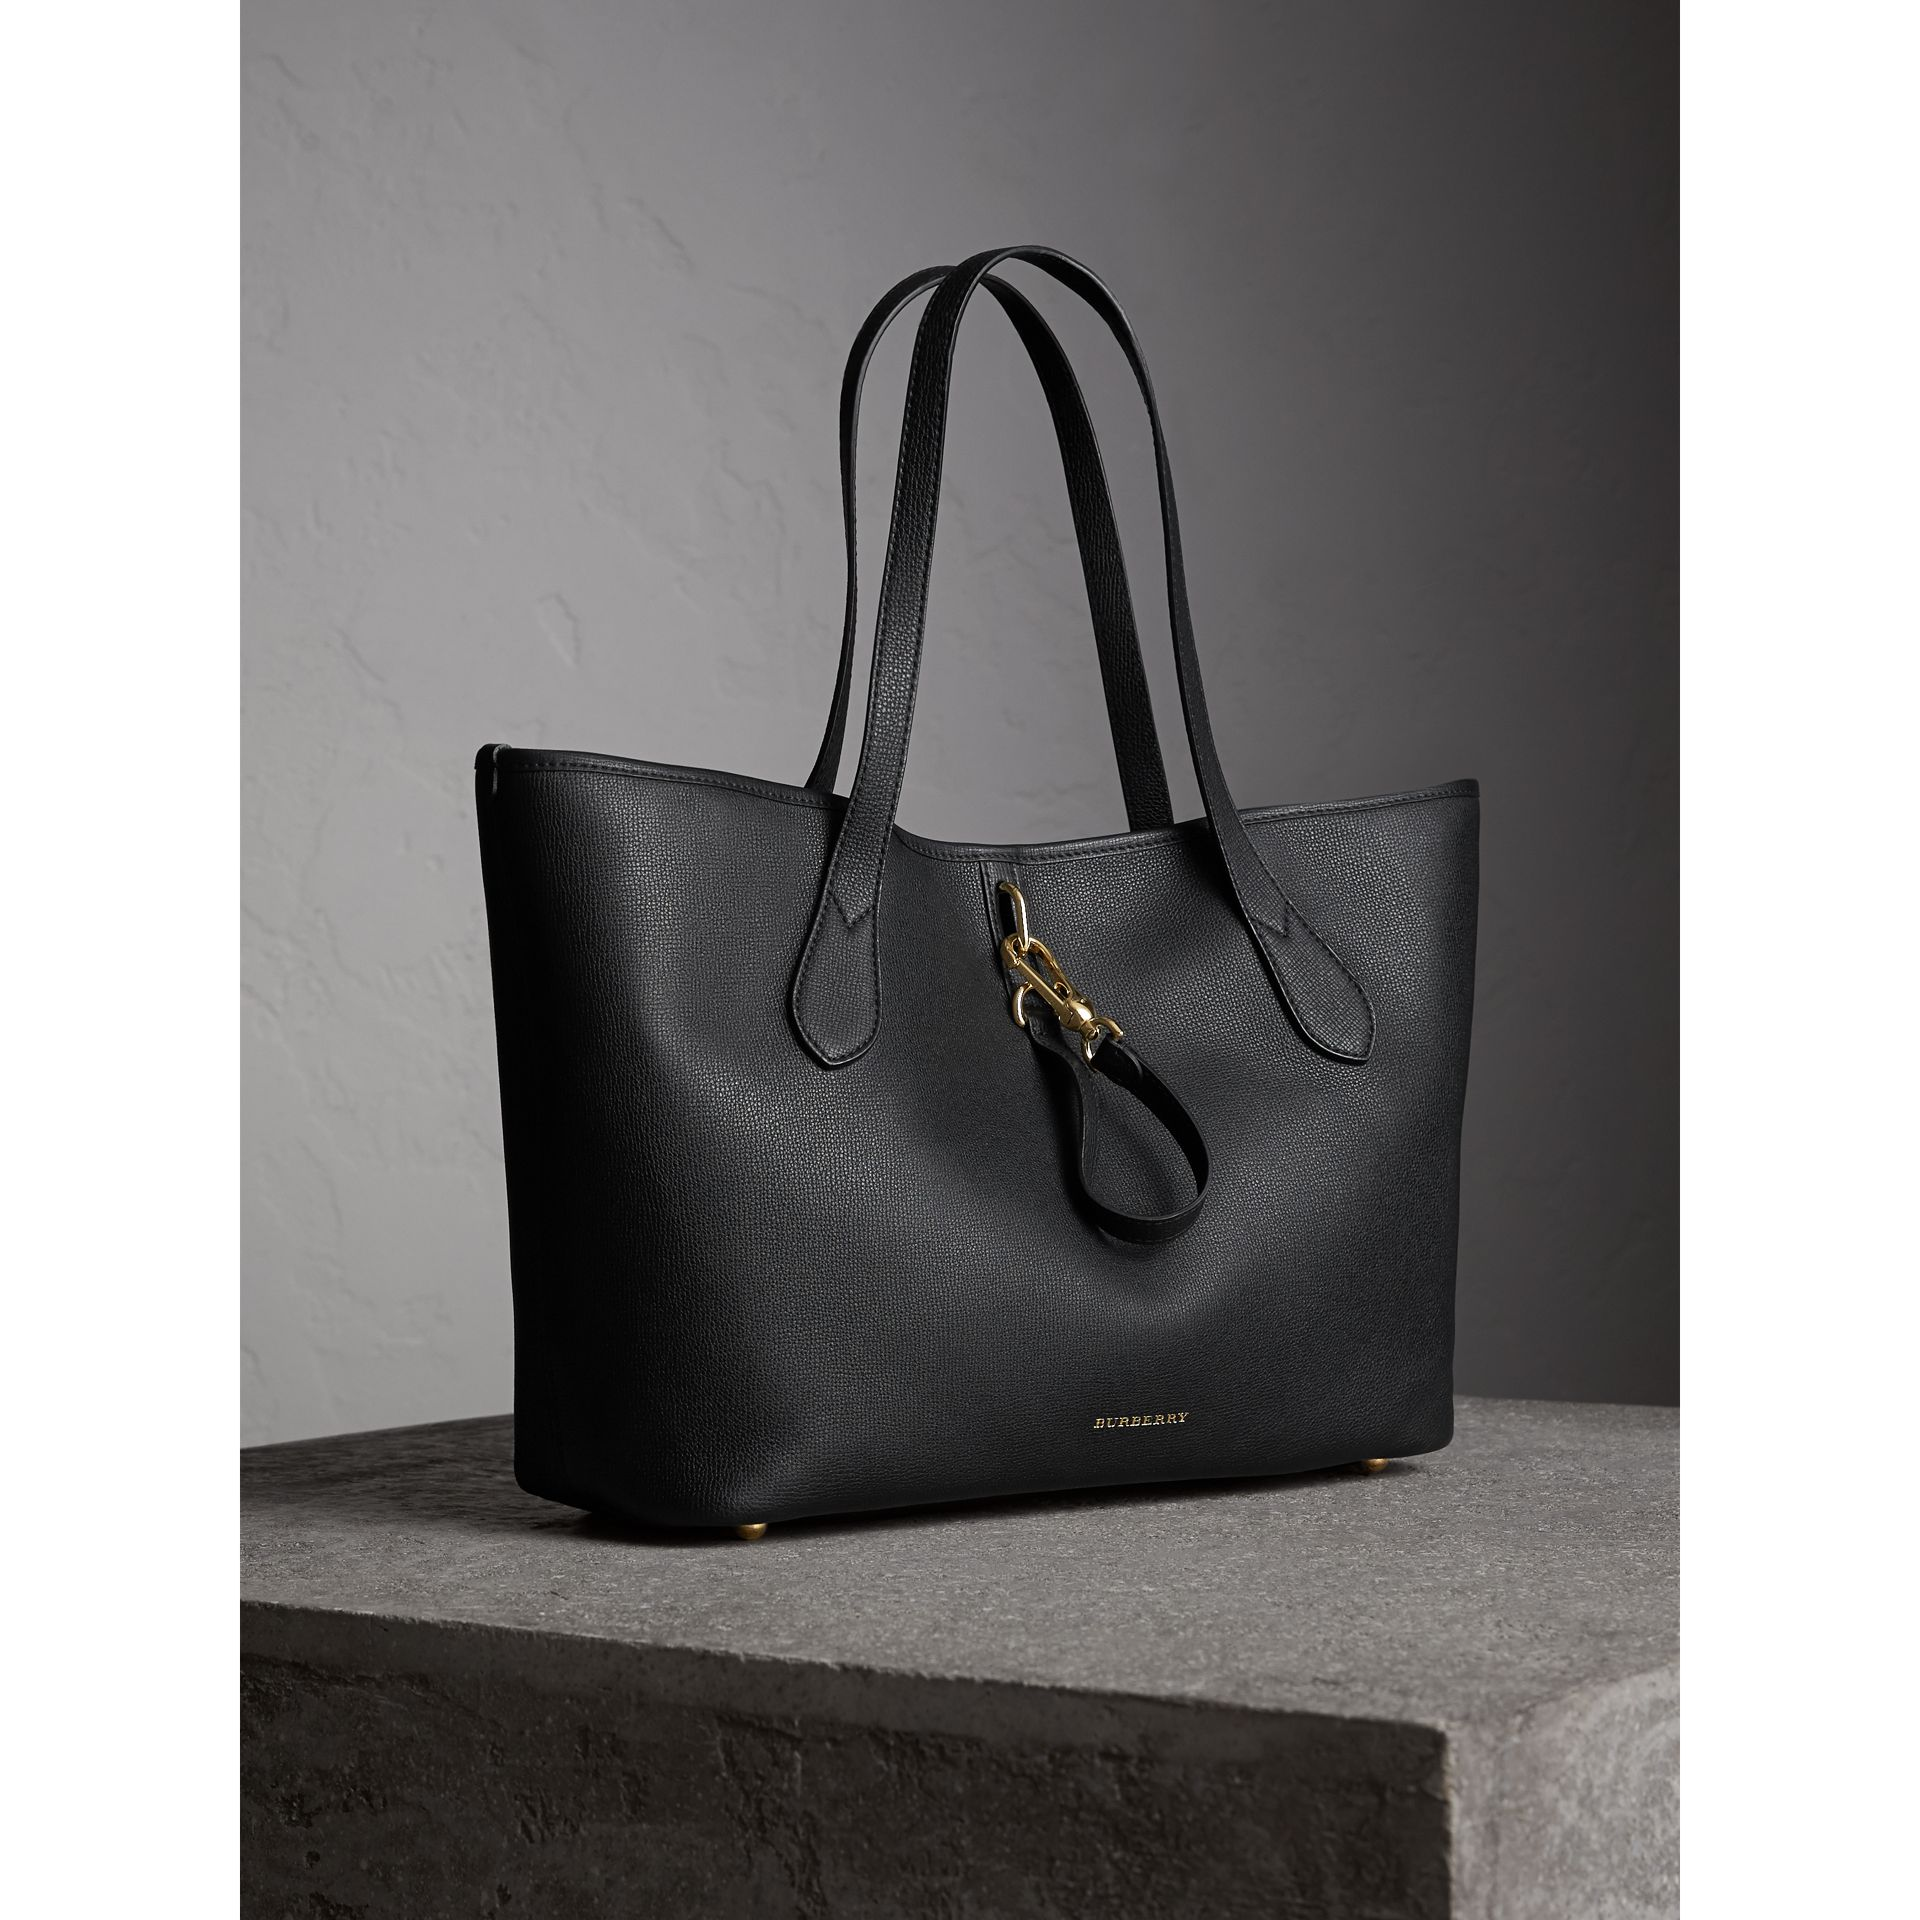 Medium Grainy Leather Tote Bag in Black - Women | Burberry United States - gallery image 6